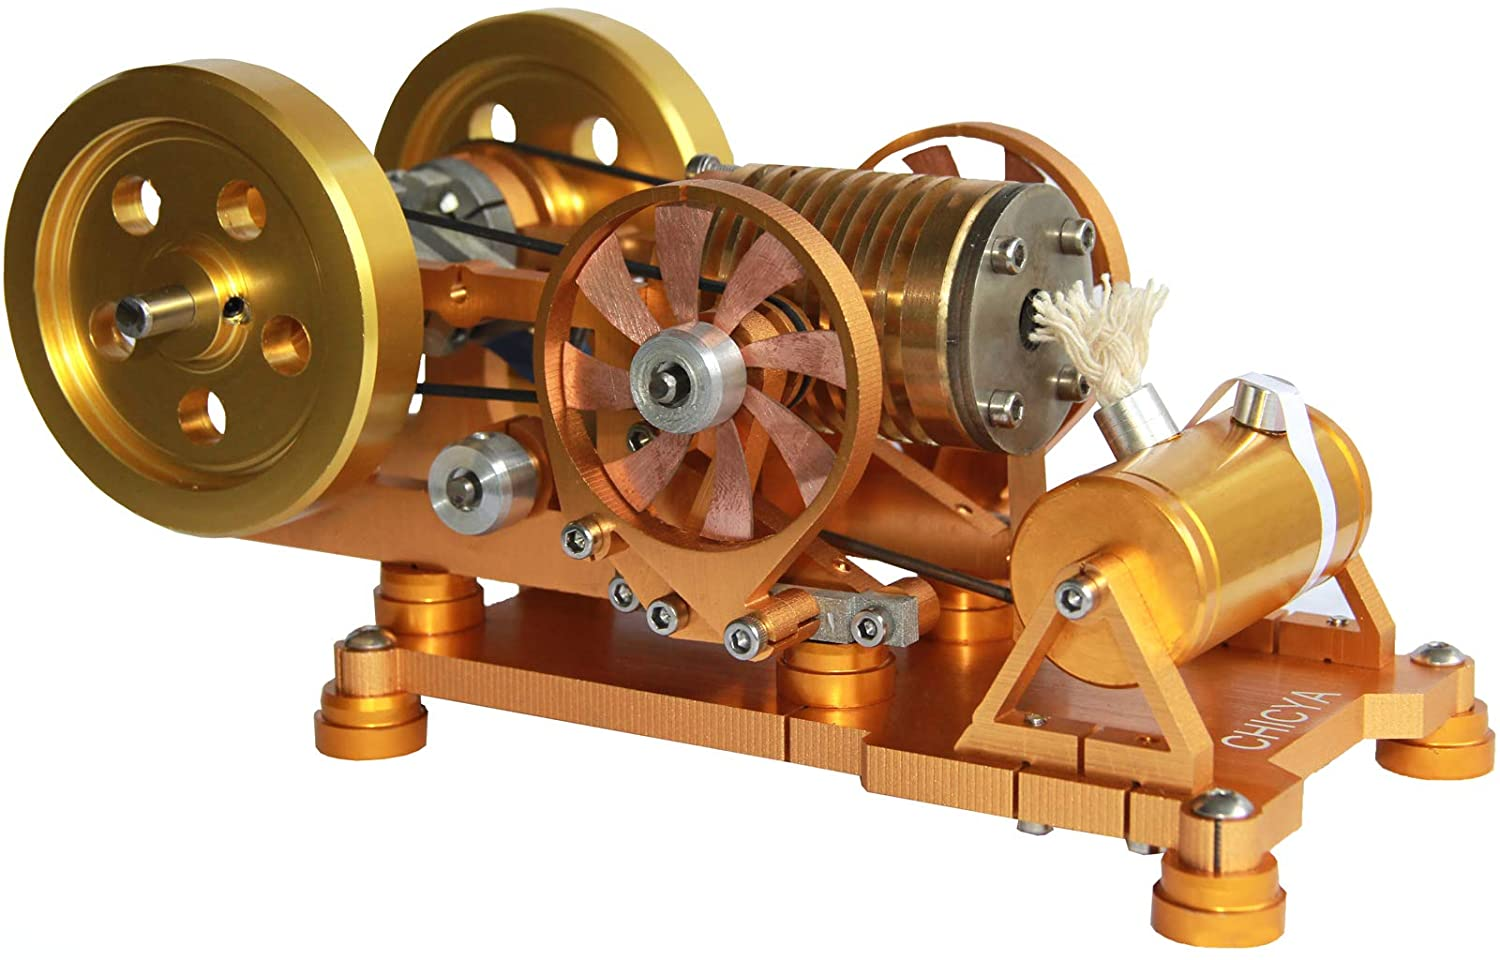 CHICYA Mini Single Cylinder Steam Engine Model Educational Toy,Newly Designed Hot Air Stirling Engine Kits,Hobby Toy for Kids&Adults